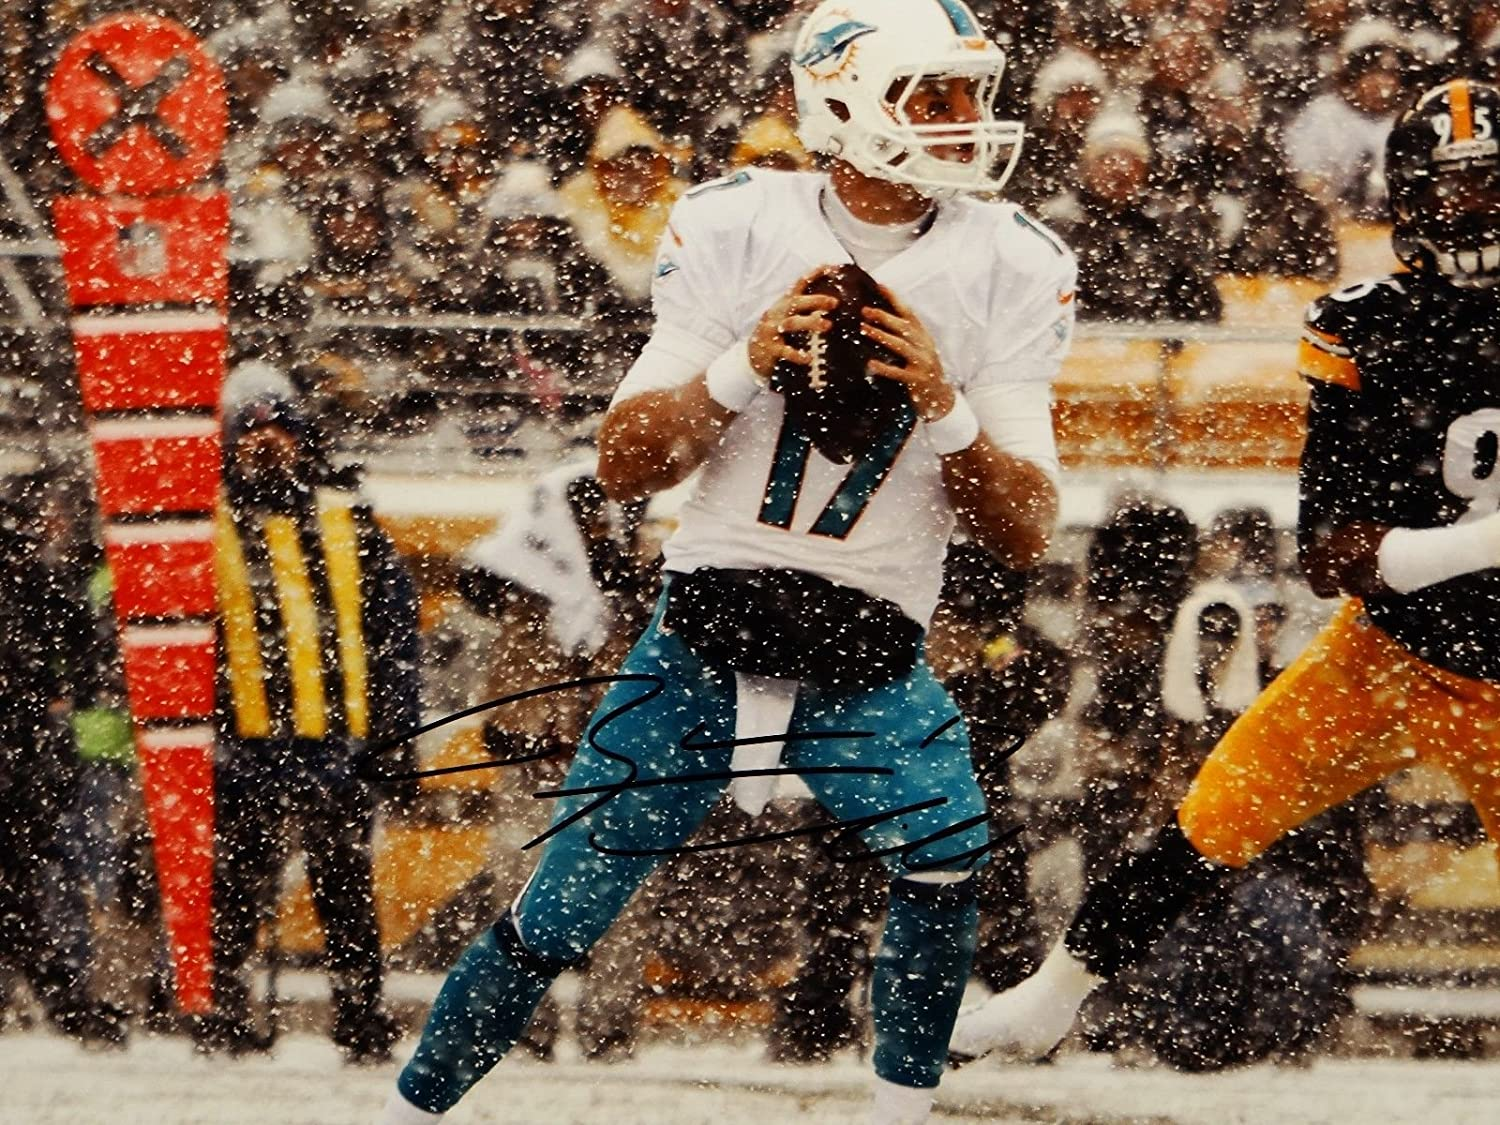 JSA Auth Ryan Tannehill Autographed 16x20 Miami Dolphins Running In Snow Photo